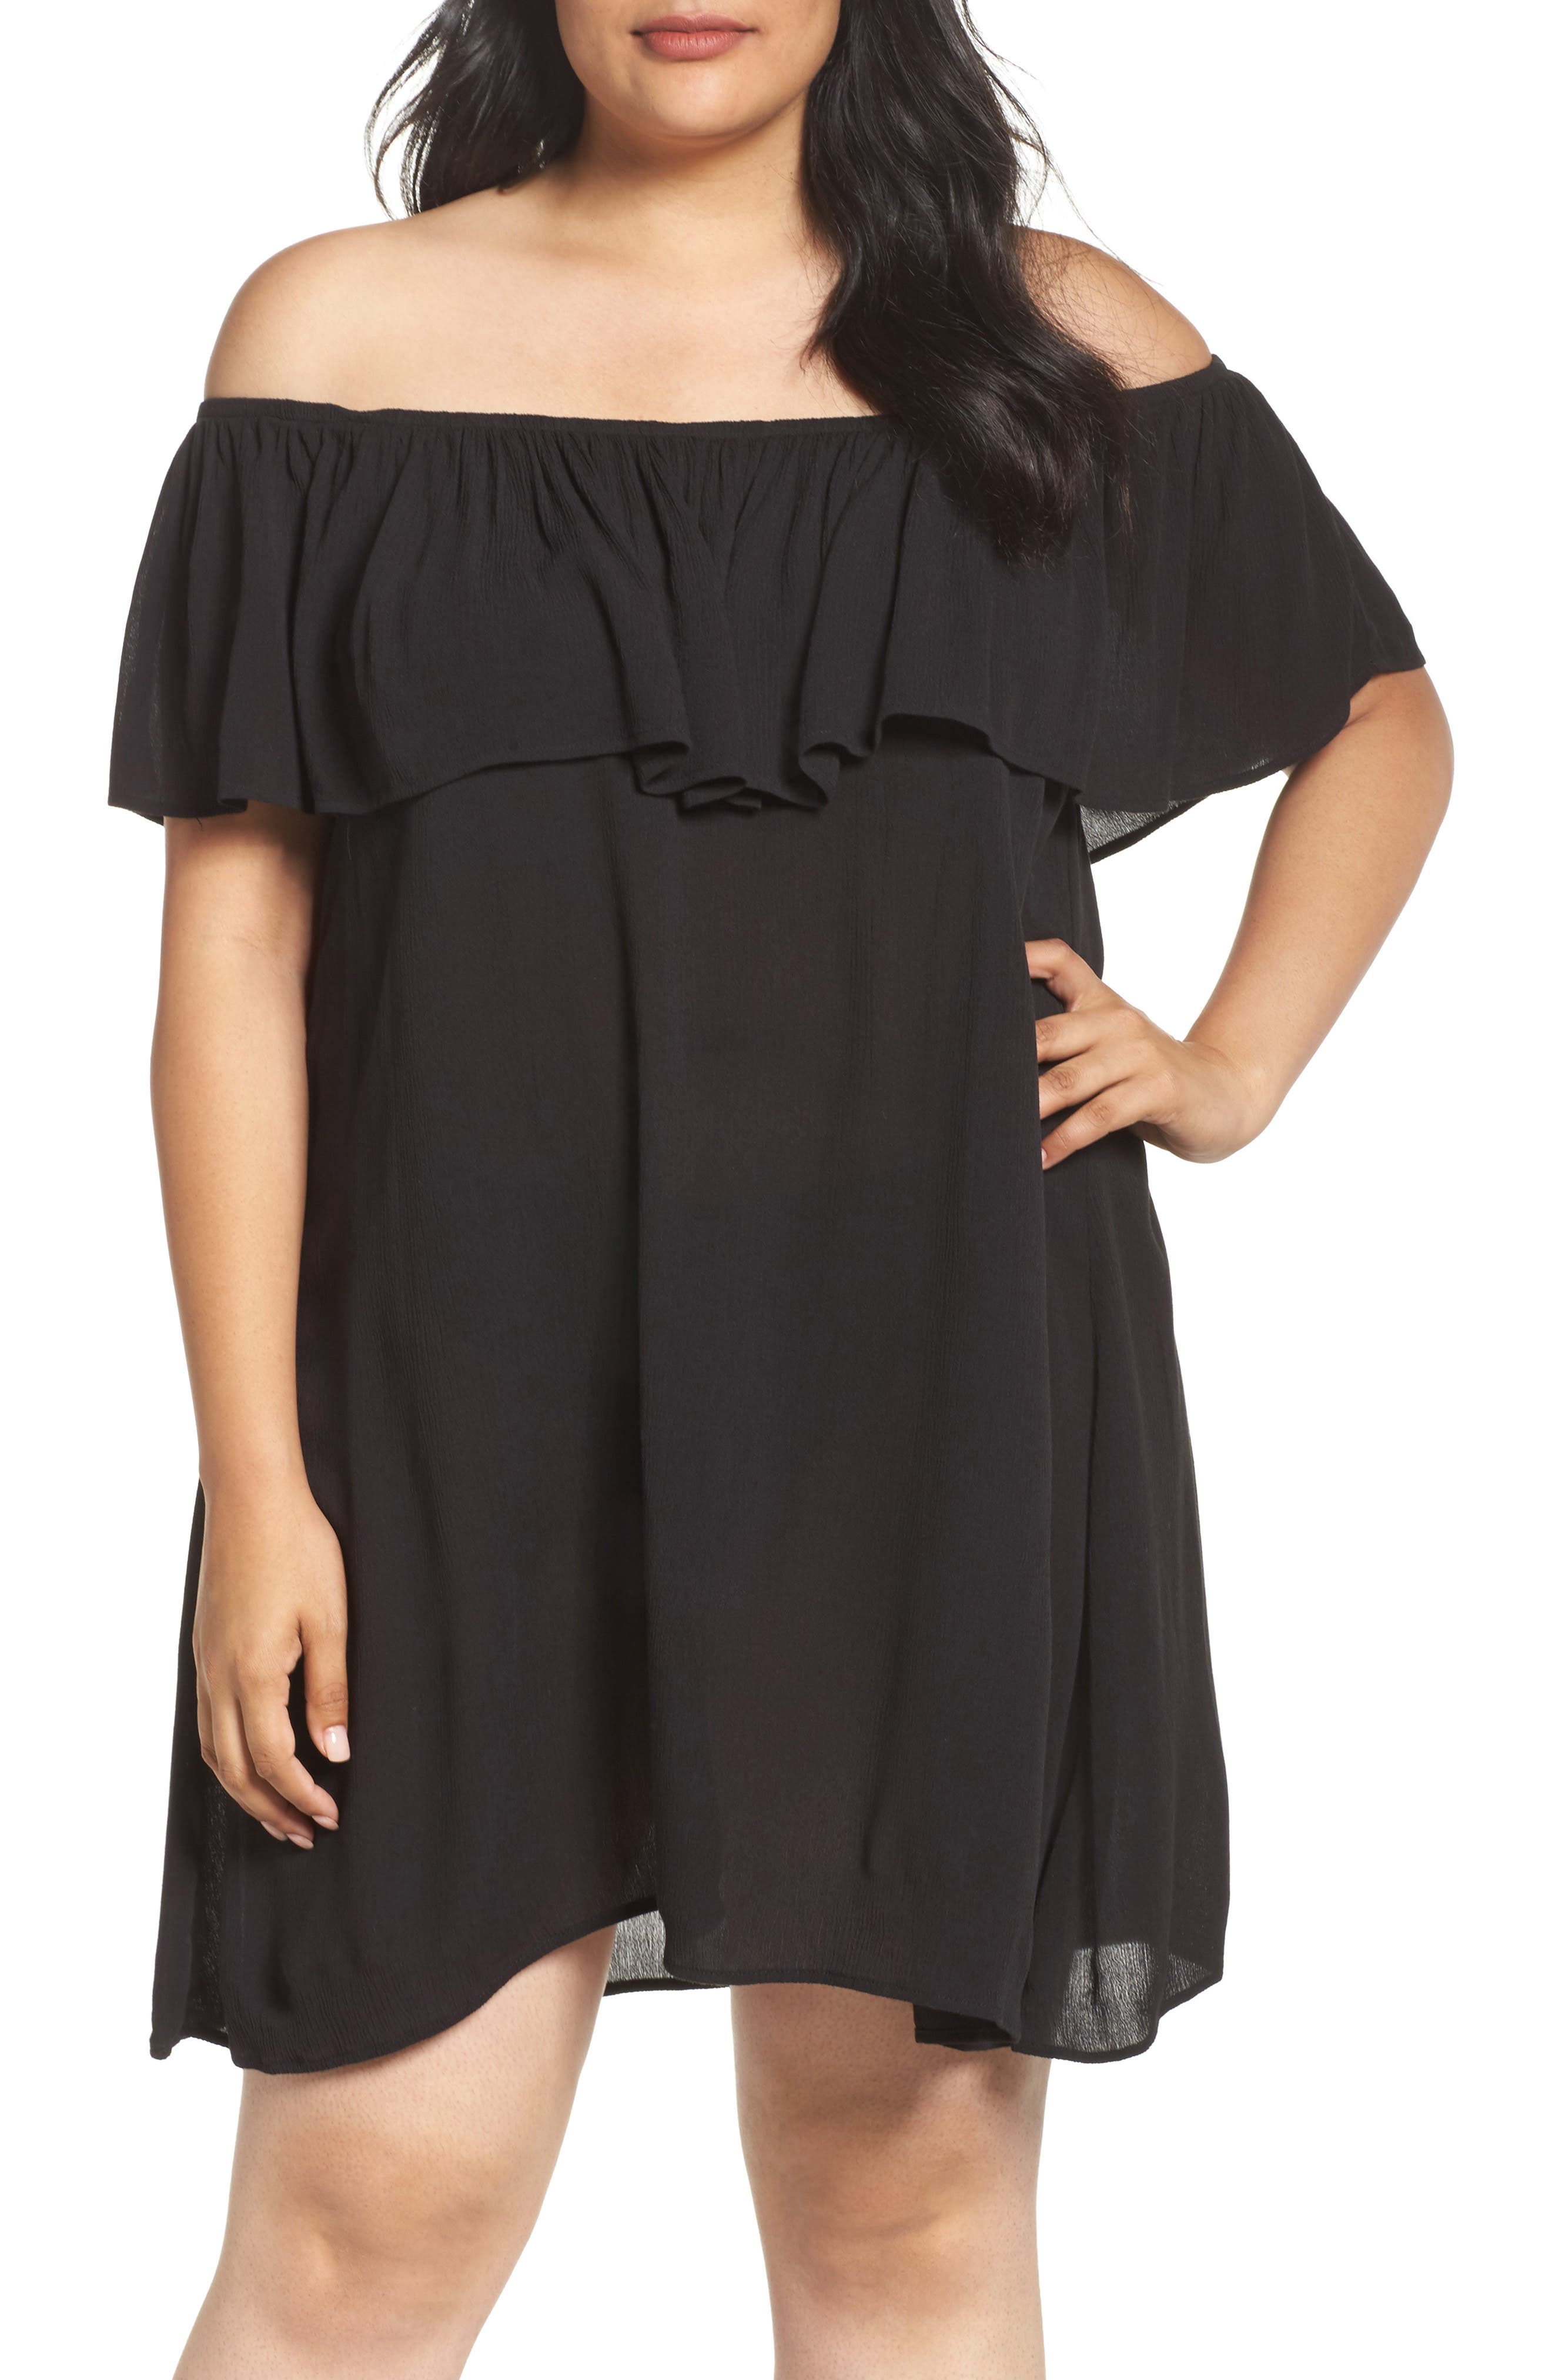 Southern Belle Off the Shoulder Cover-Up Dress,                             Main thumbnail 1, color,                             001